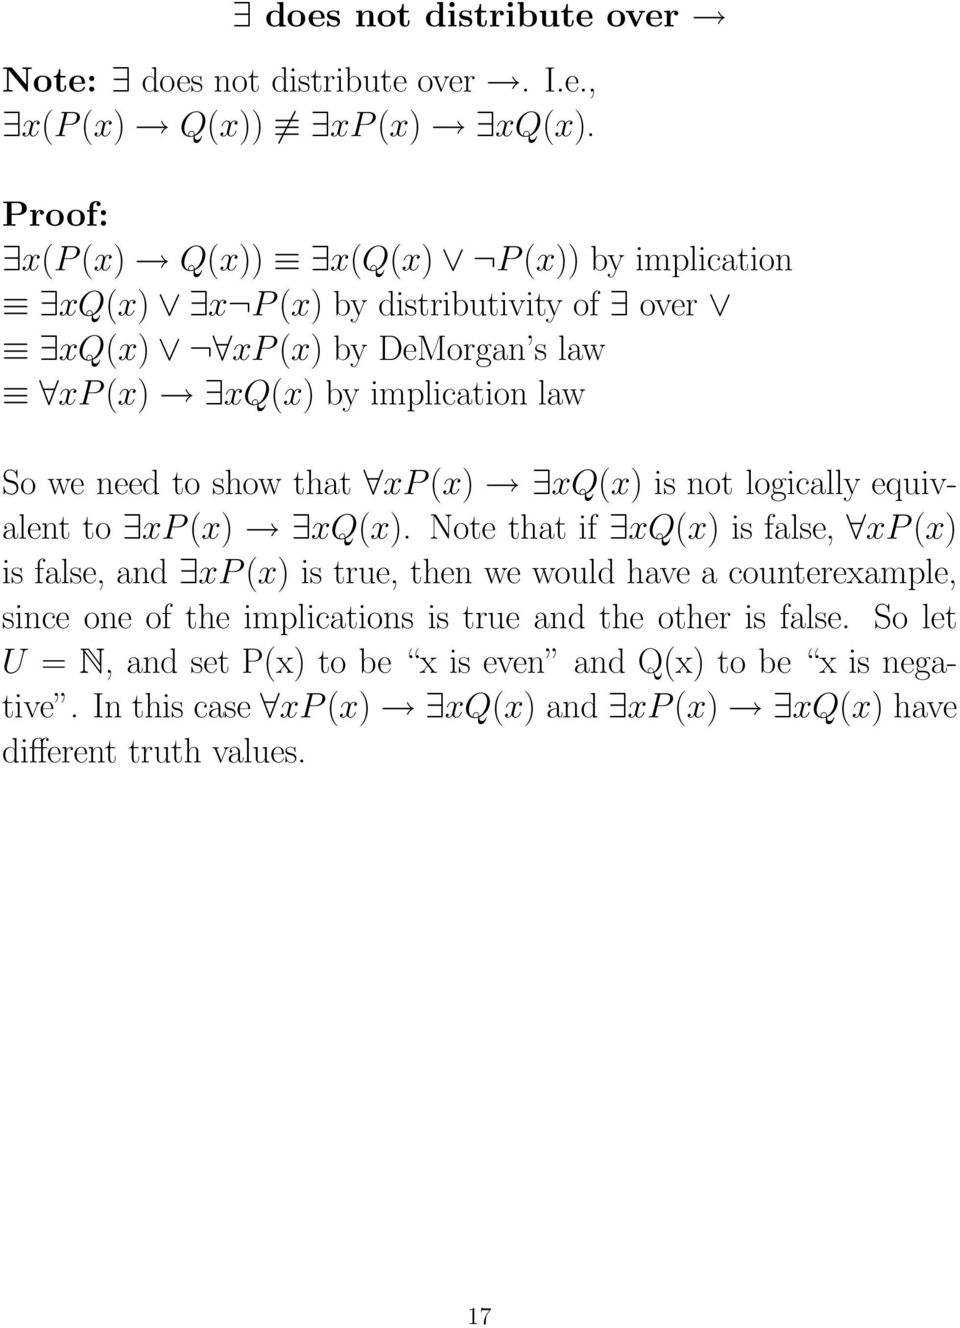 need to show that xp(x) xq(x) is not logically equivalent to xp(x) xq(x).